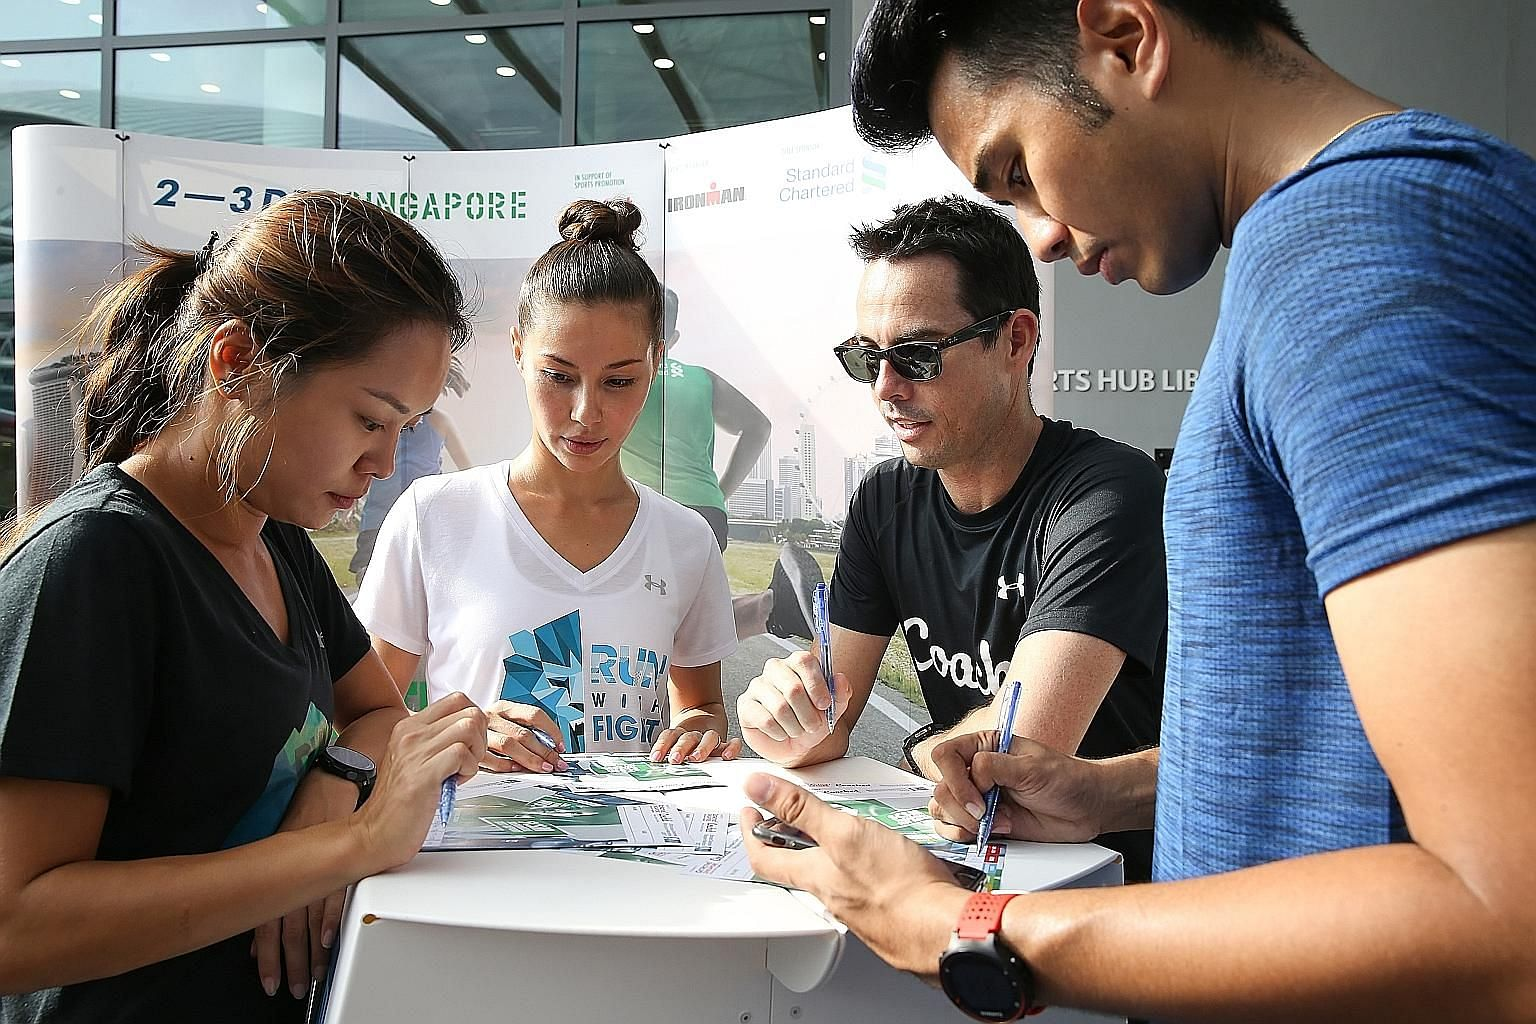 Under Armour Ambassadors Yang Man Yun (far left), Denise Keller (2nd from left) and SCSM Ambassador Joakim Gomez (right) getting zoning advice from running coach Ben Pulham.